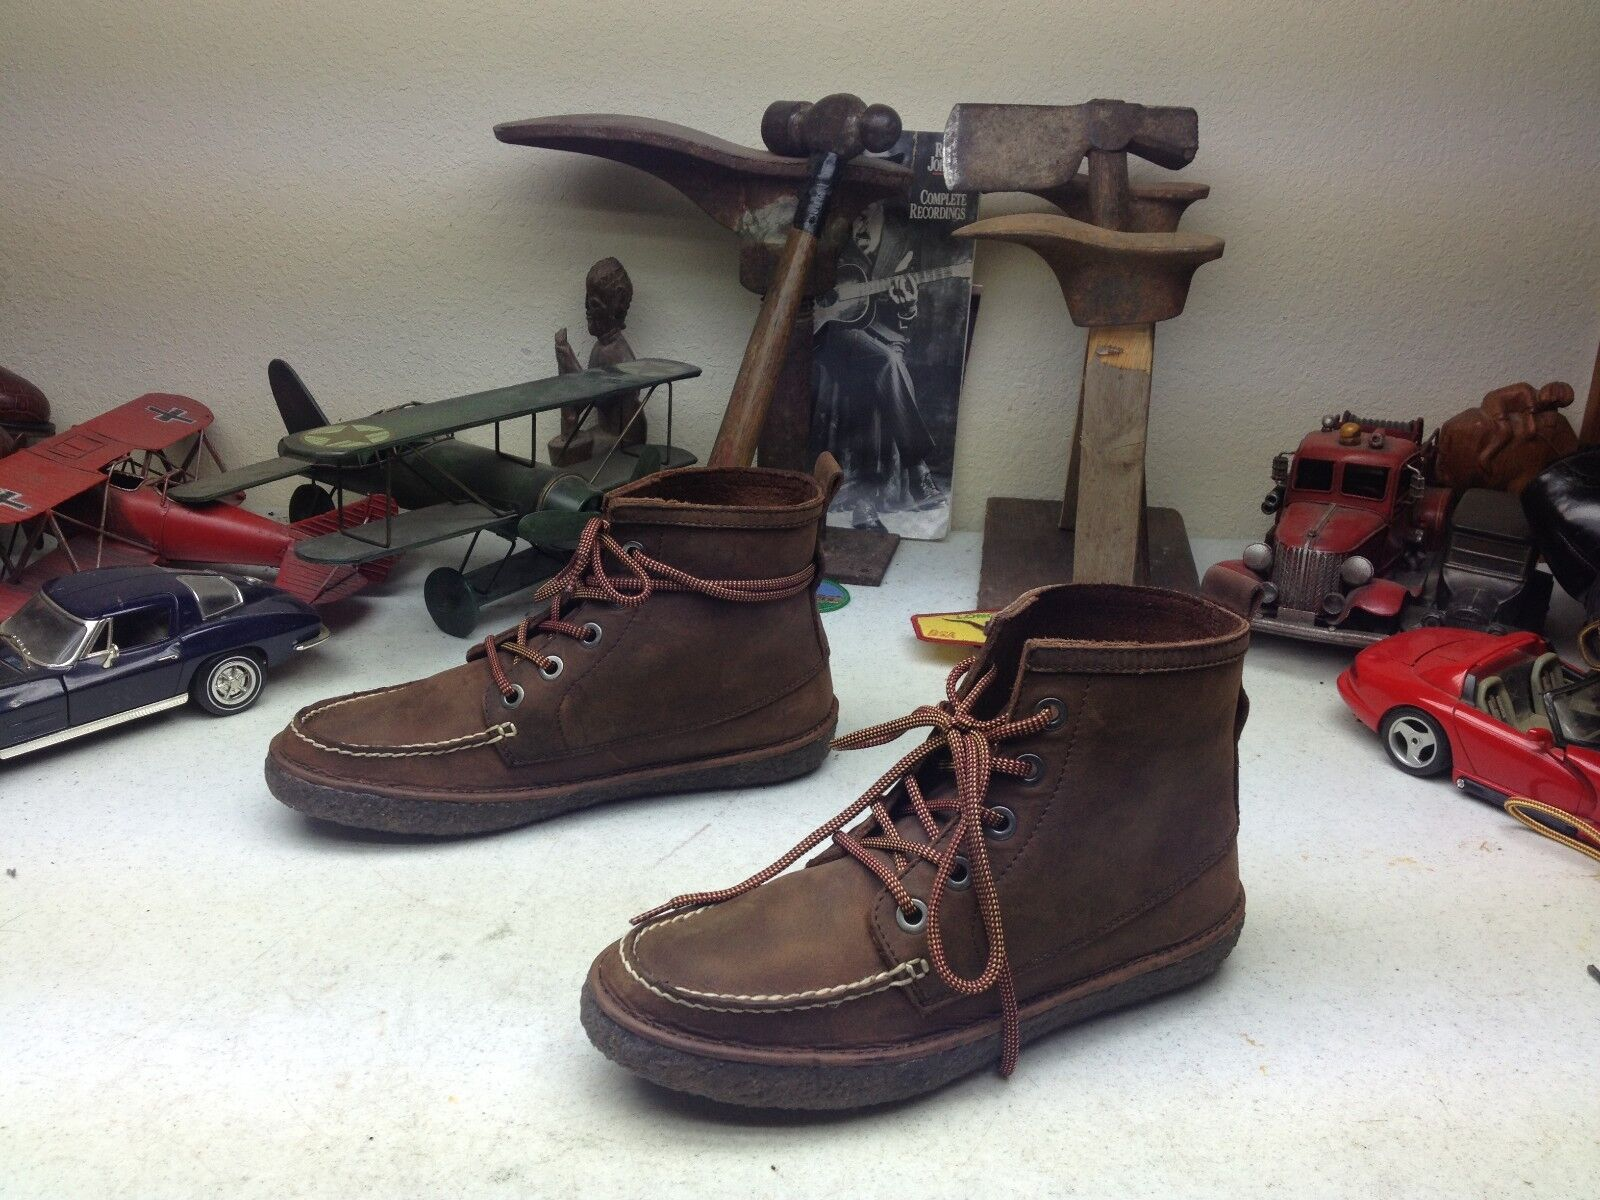 CALIFORNIA AUTHENTIC SEAVEES 5 EYE LACE UP TRAIL HIKE Marroneee LEATHER stivali 7 M